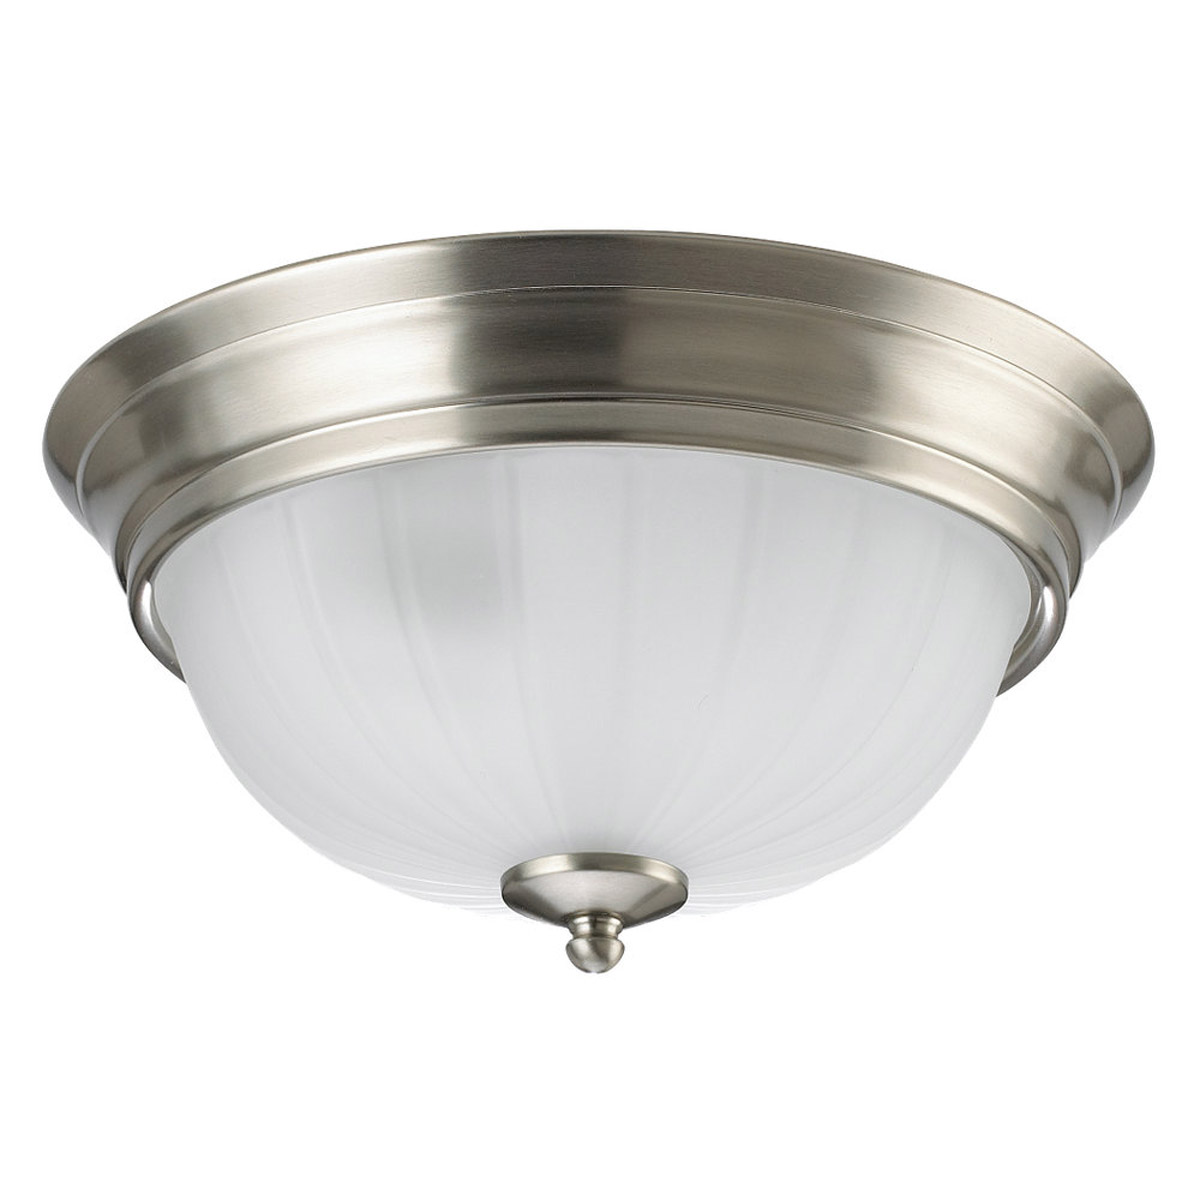 Sea Gull Lighting Floyd 2 Light Flush Mount in Brushed Nickel 79505BLE-962 photo